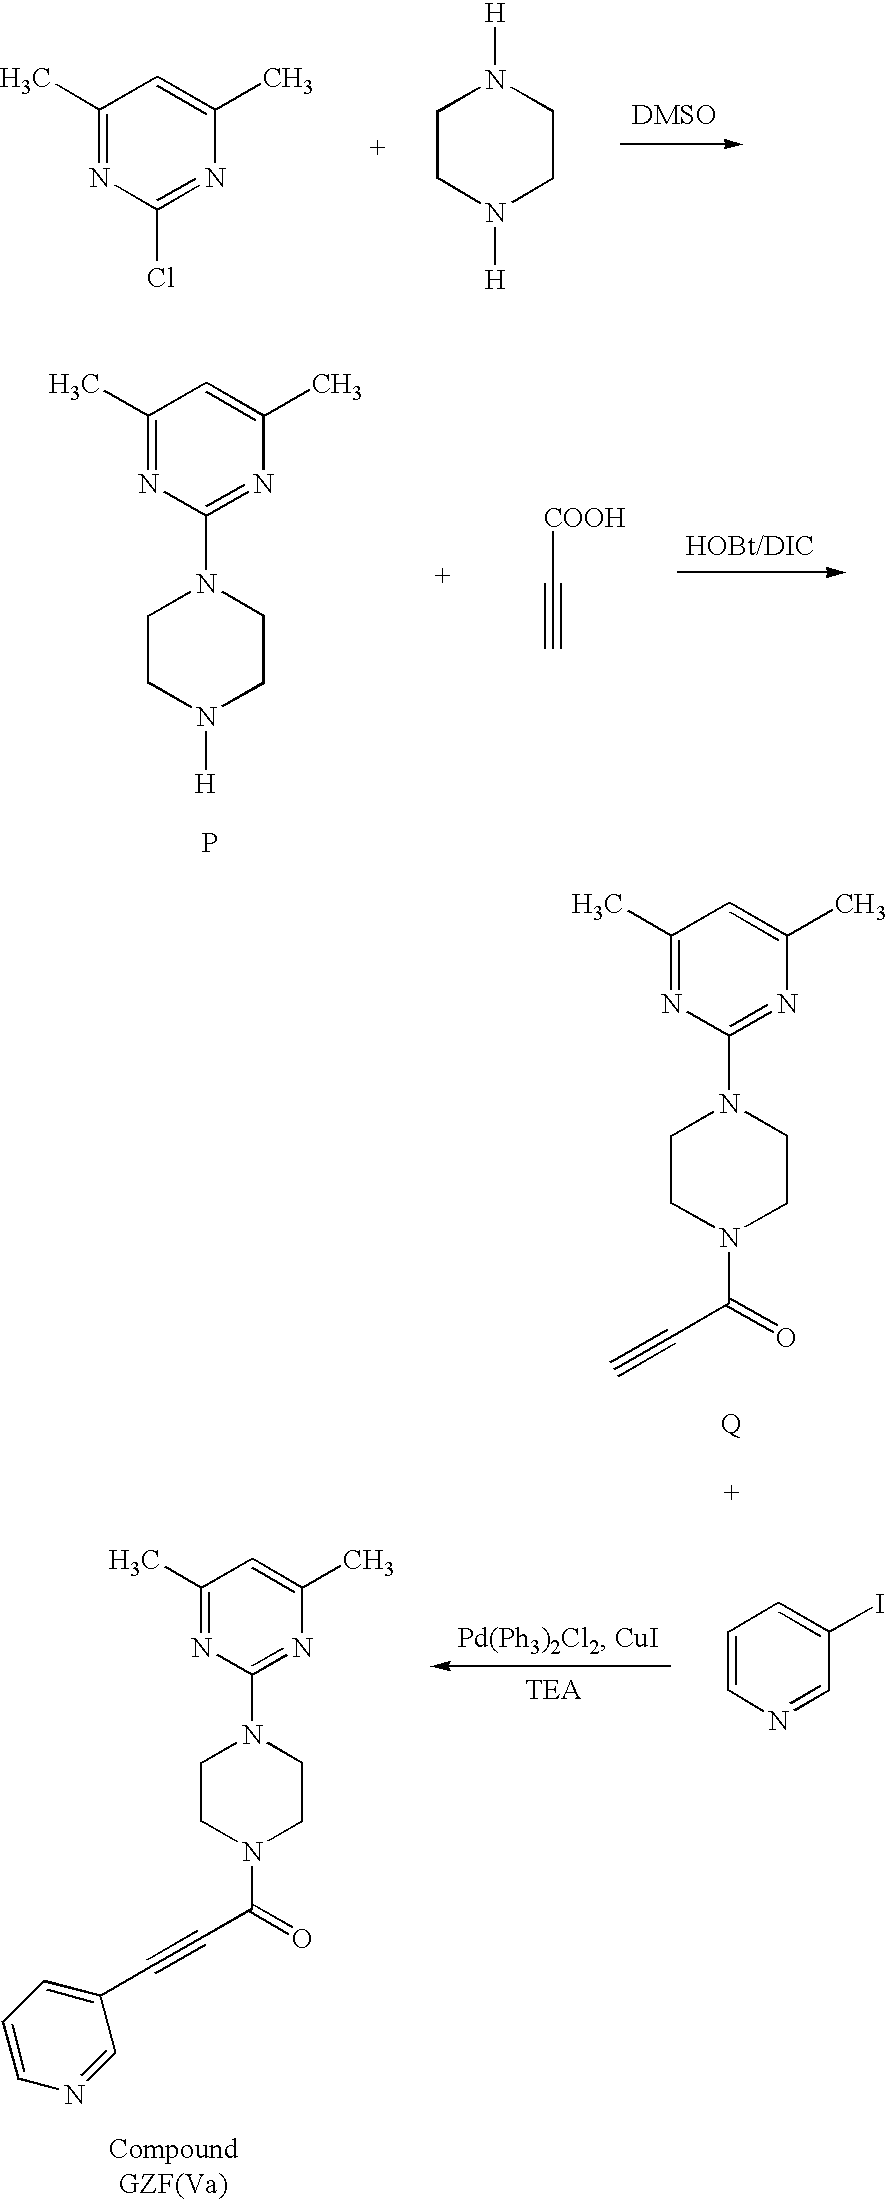 US20040127501A1 - Therapeutic agents useful for treating pain